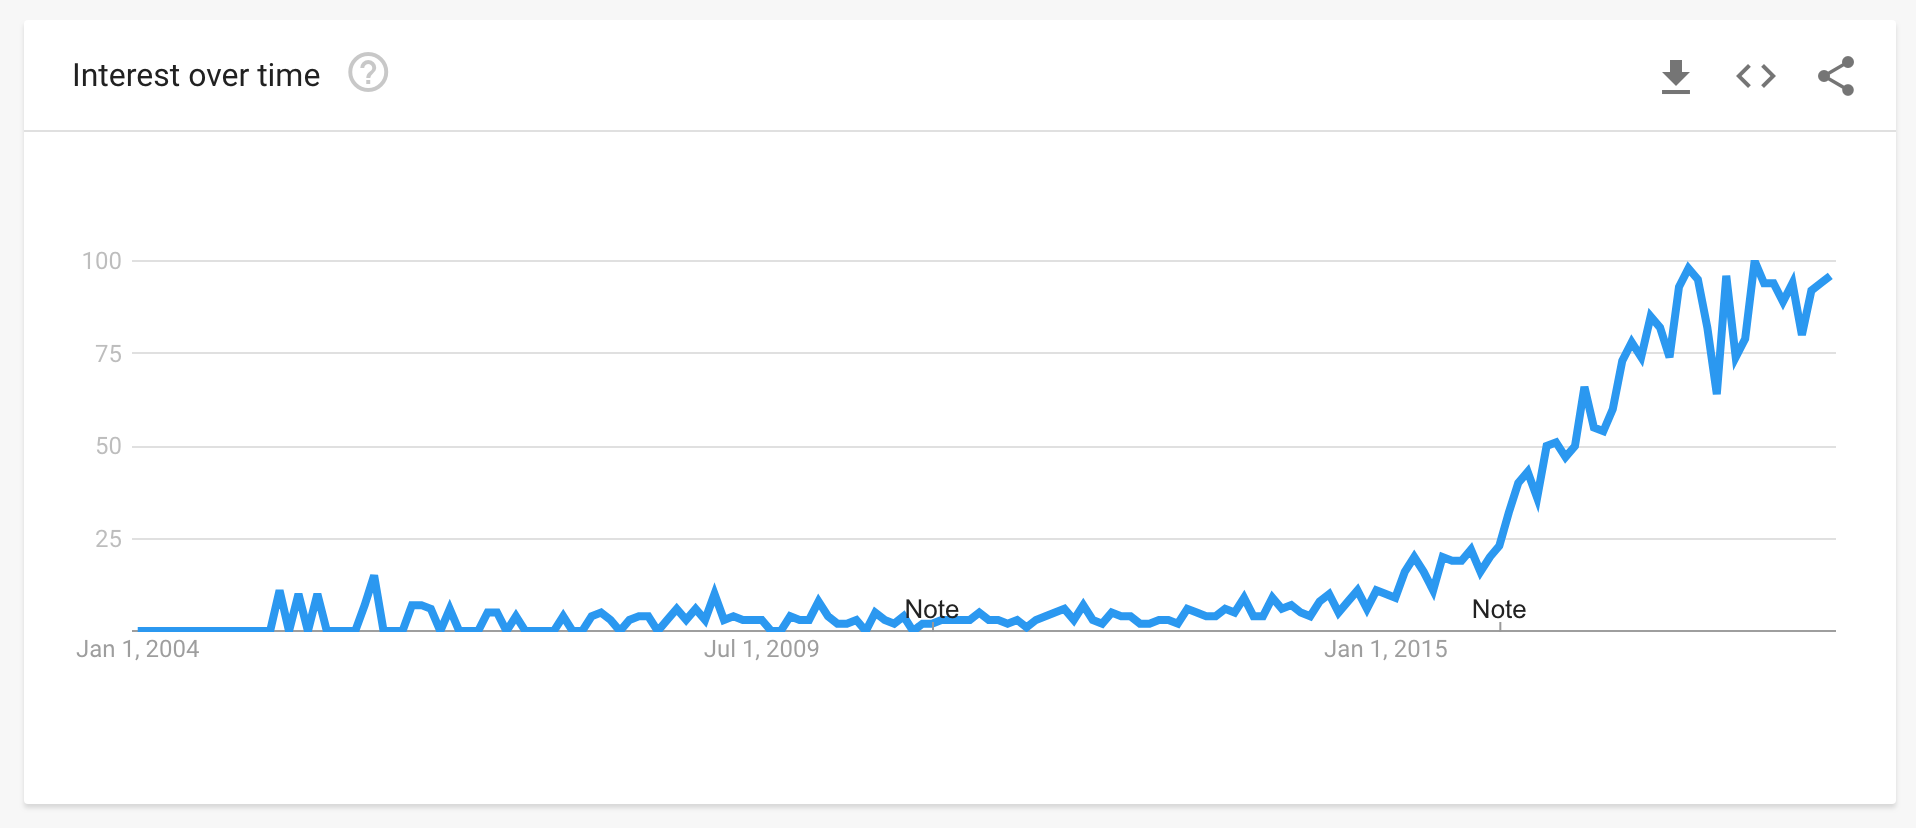 Influencer Marketing Interest Over Time